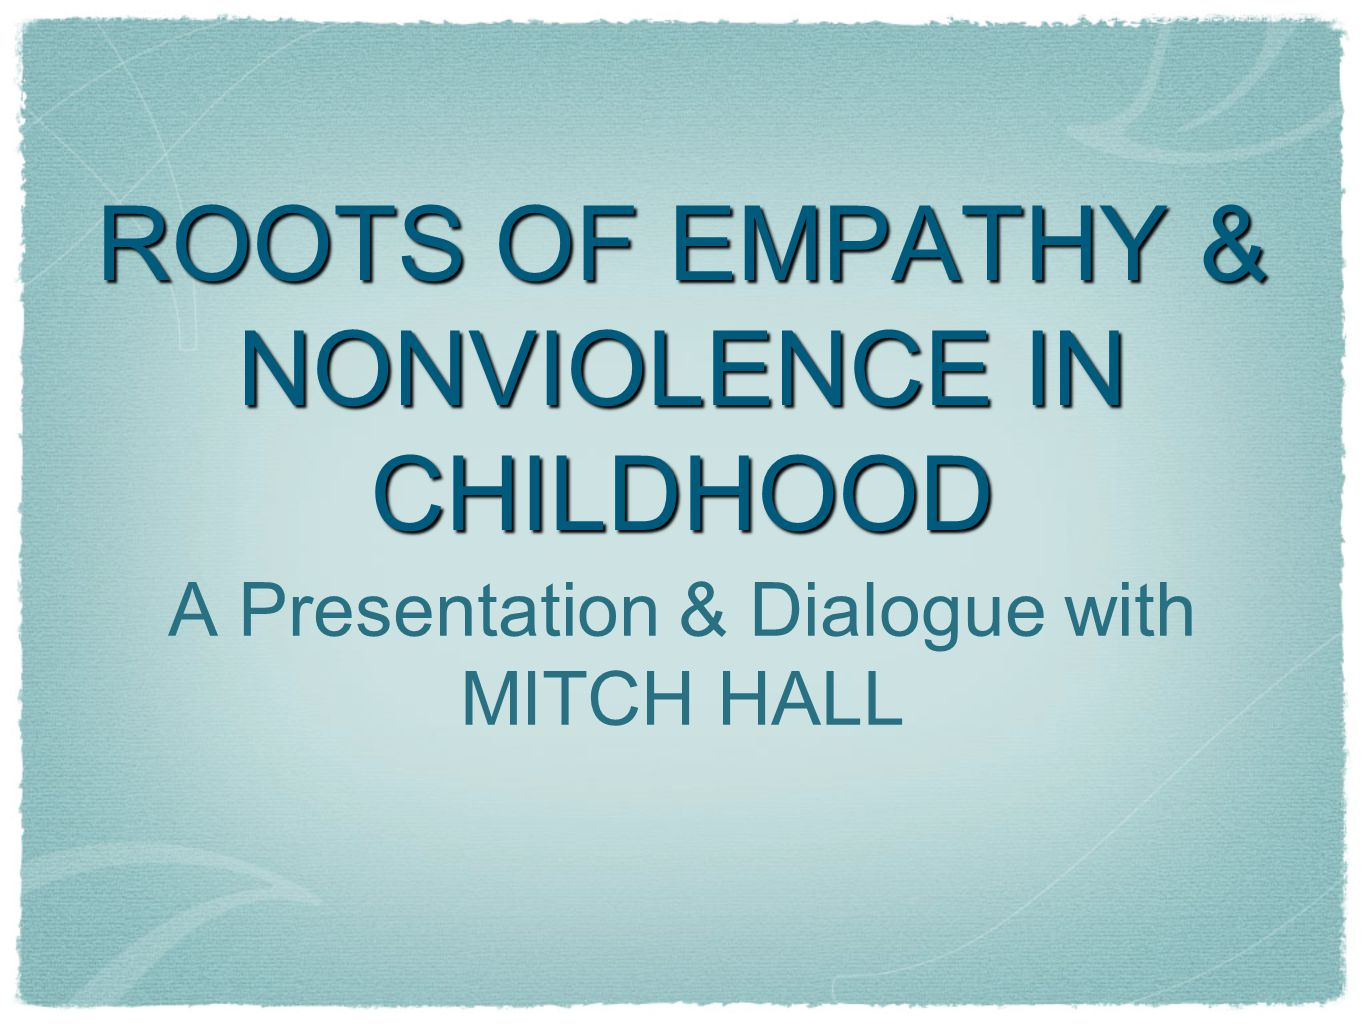 ROOTS OF EMPATHY & NONVIOLENCE IN CHILDHOOD A Presentation & Dialogue with MITCH HALL